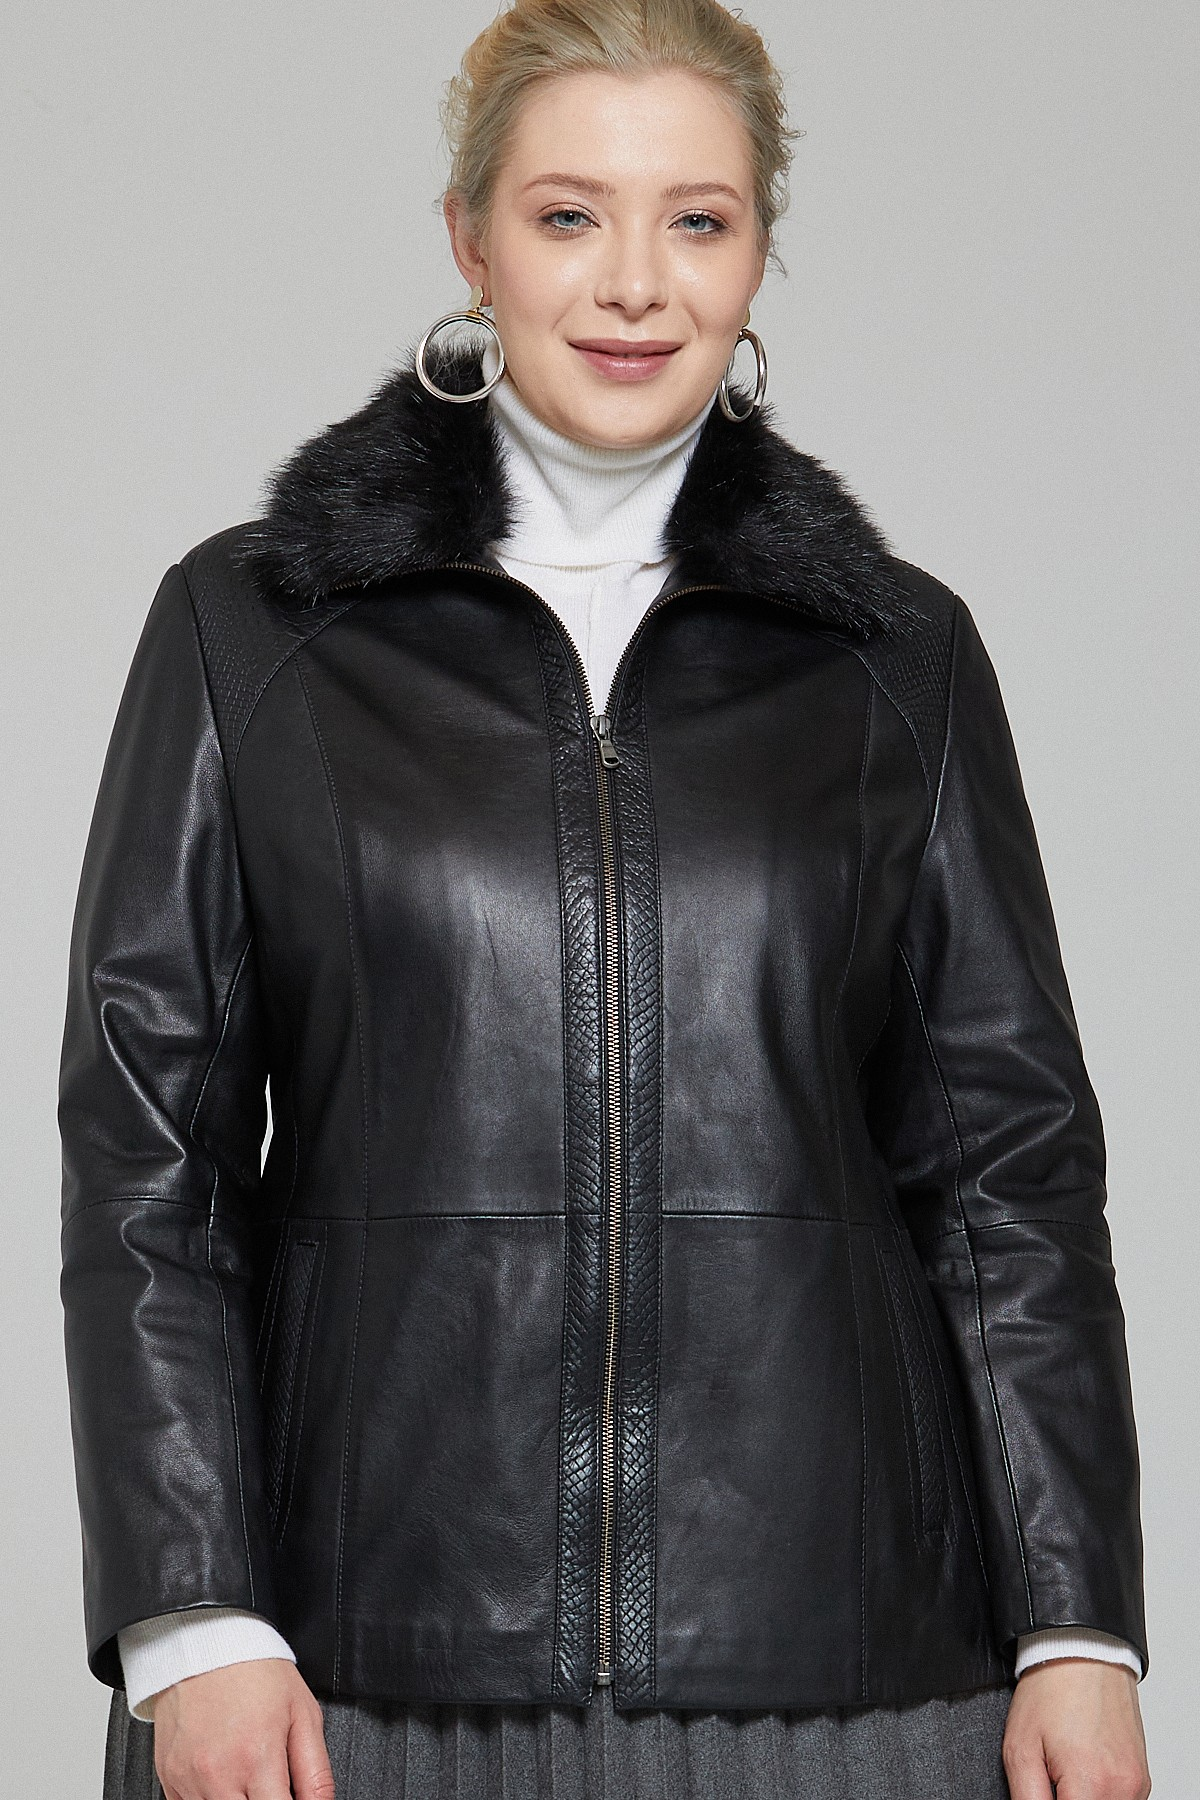 Leather Jackets With Fur